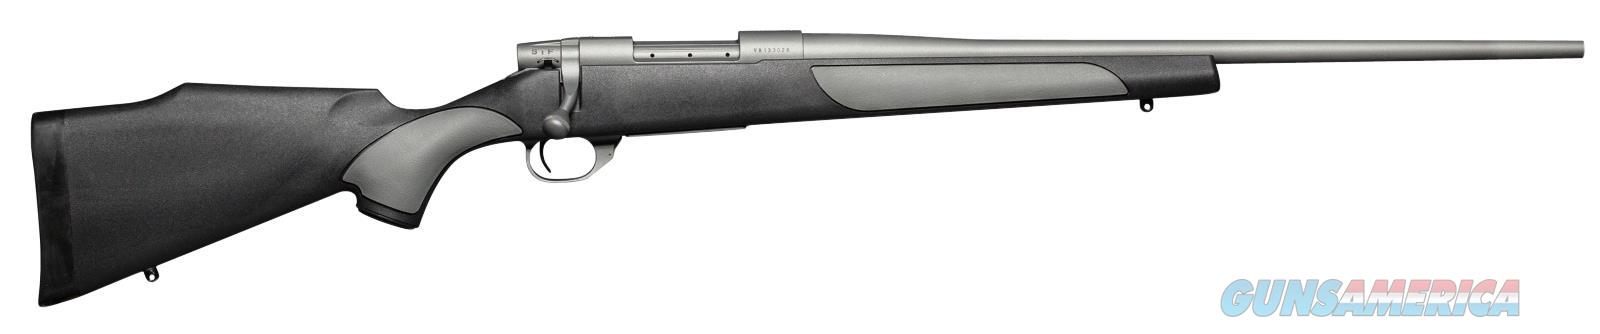 "WEATHERBY VGD WTHRGRD 308 20"" 4RD VTC308NR0O  Guns > Rifles > Weatherby Rifles > Sporting"